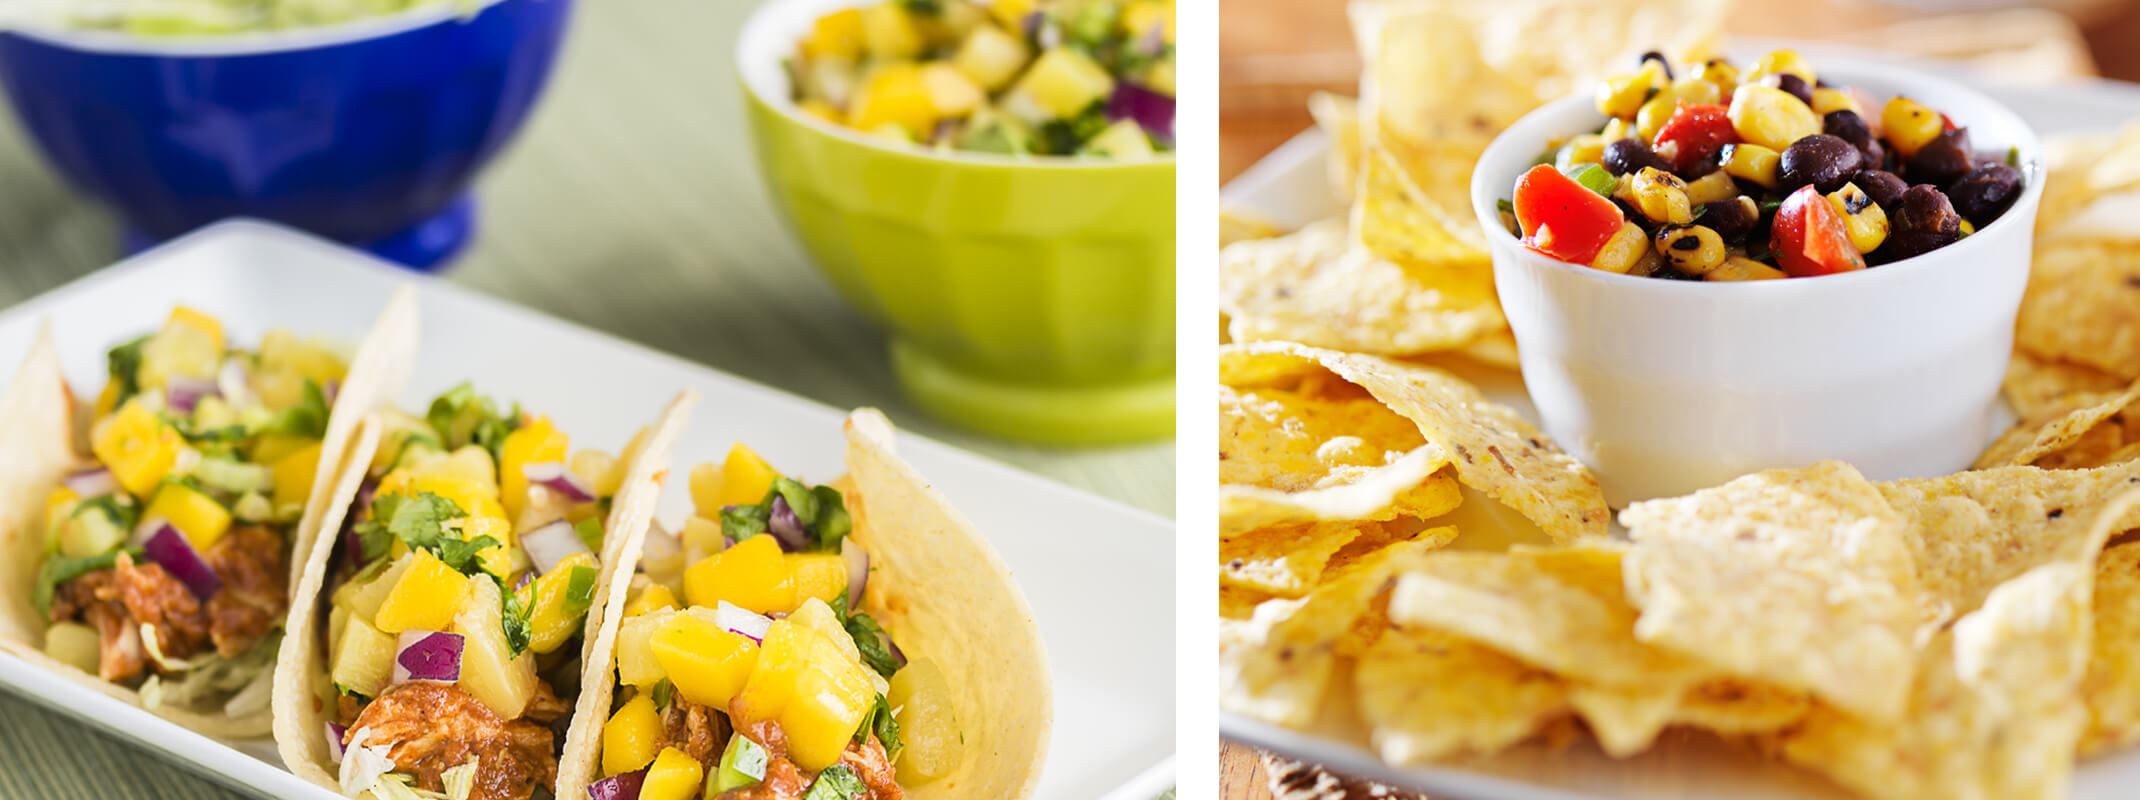 3 street tacos with mango and a plate of tortilla chips surrounding a small bowl of fresh salsa